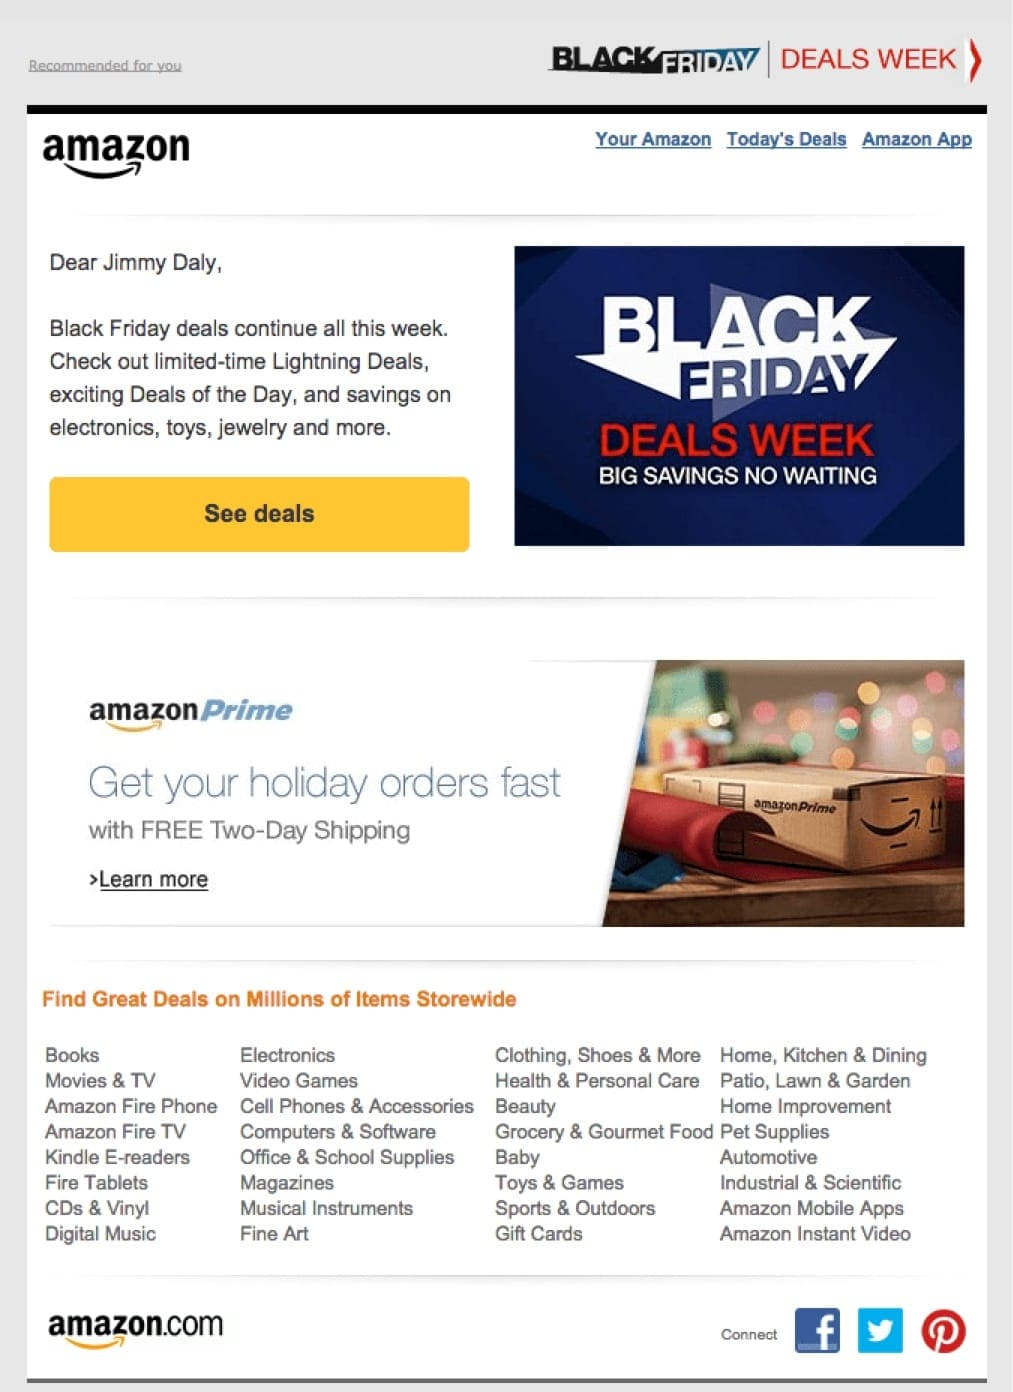 Amazon's Email Drip Campaign